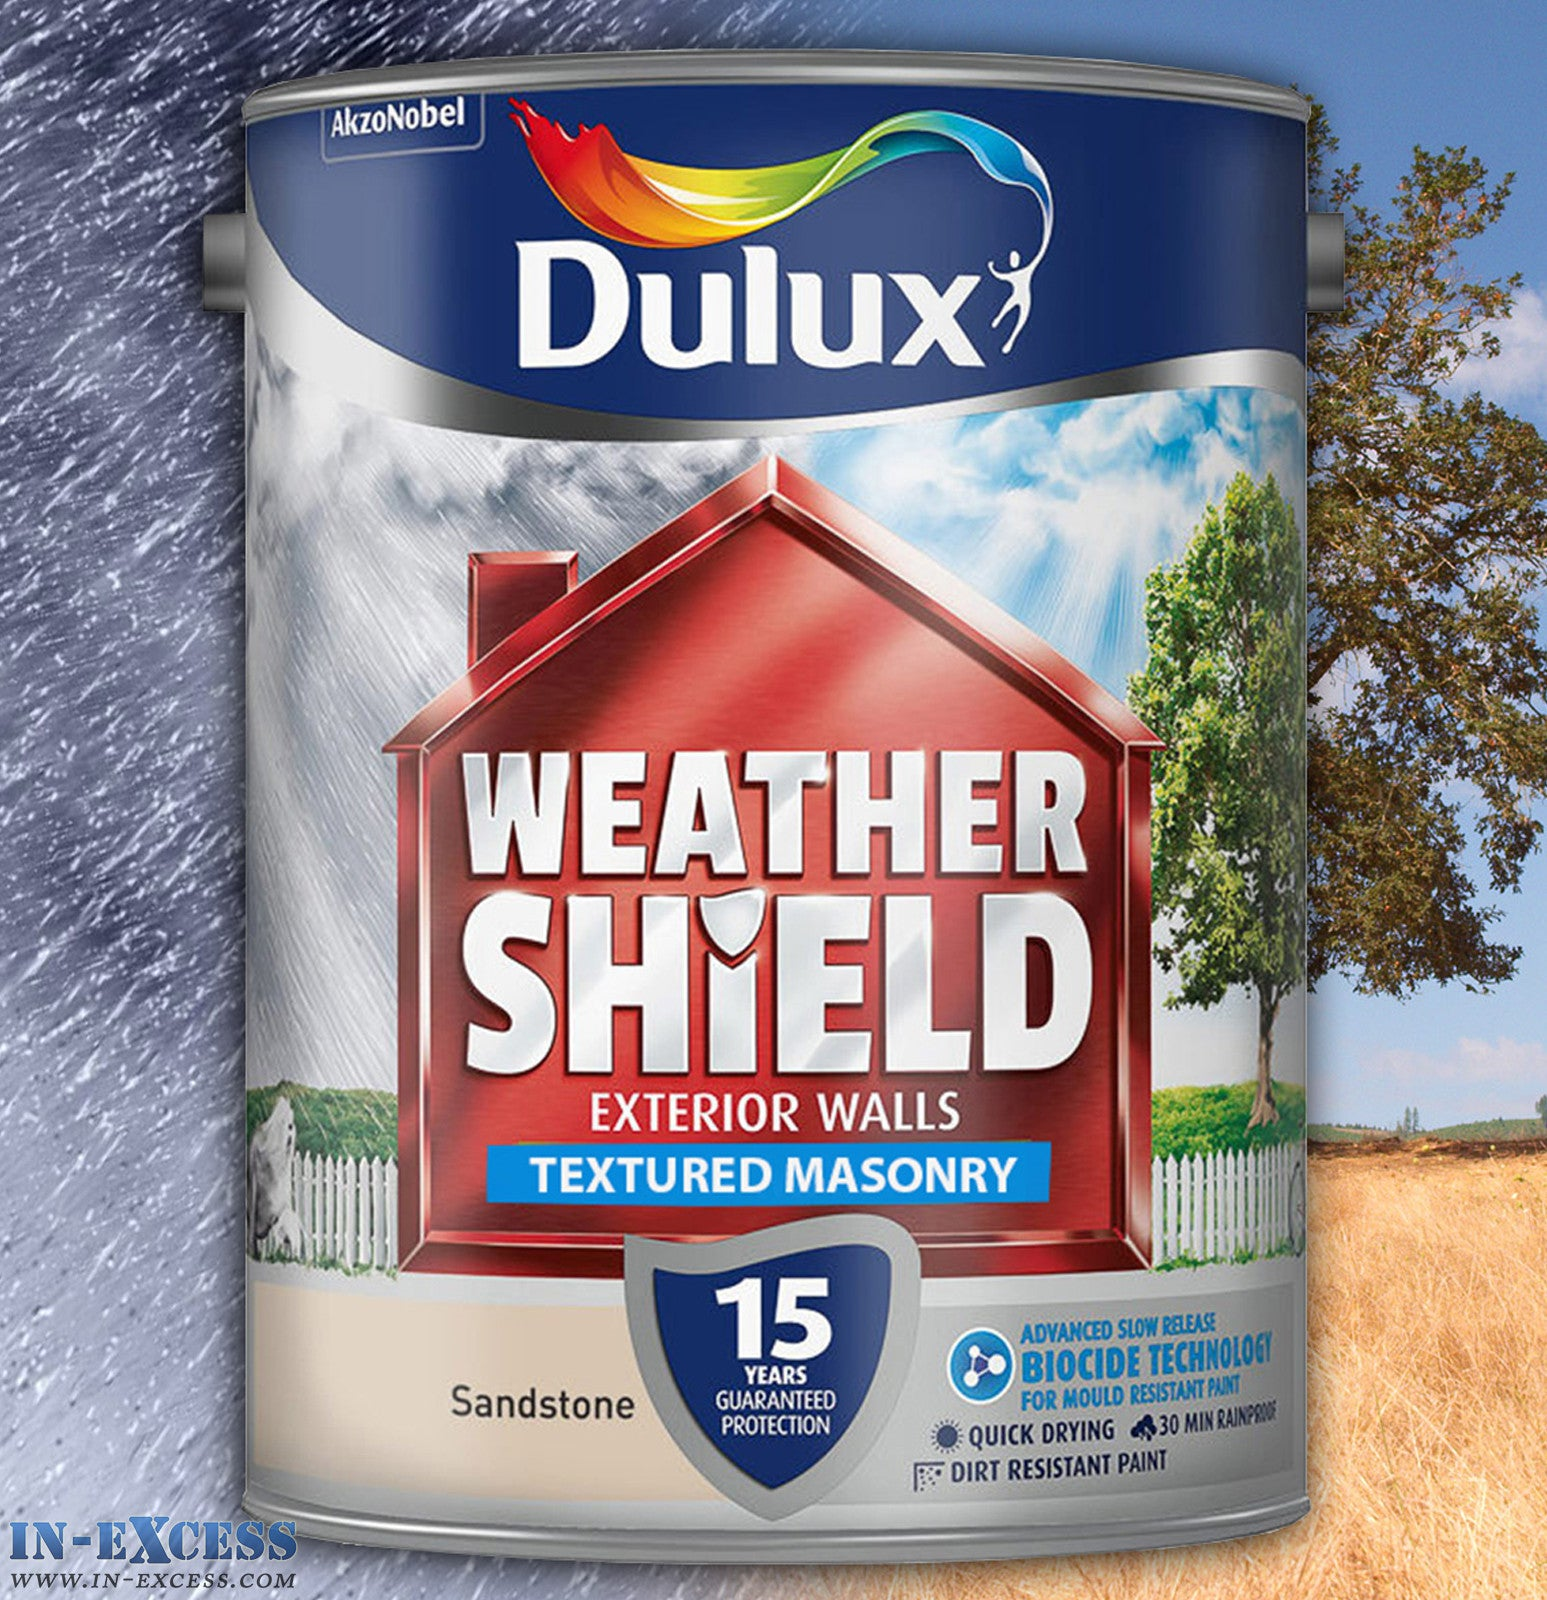 Dulux Weather Shield Exterior Walls Masonry Paint Textured Ashen Whi In Excess Direct